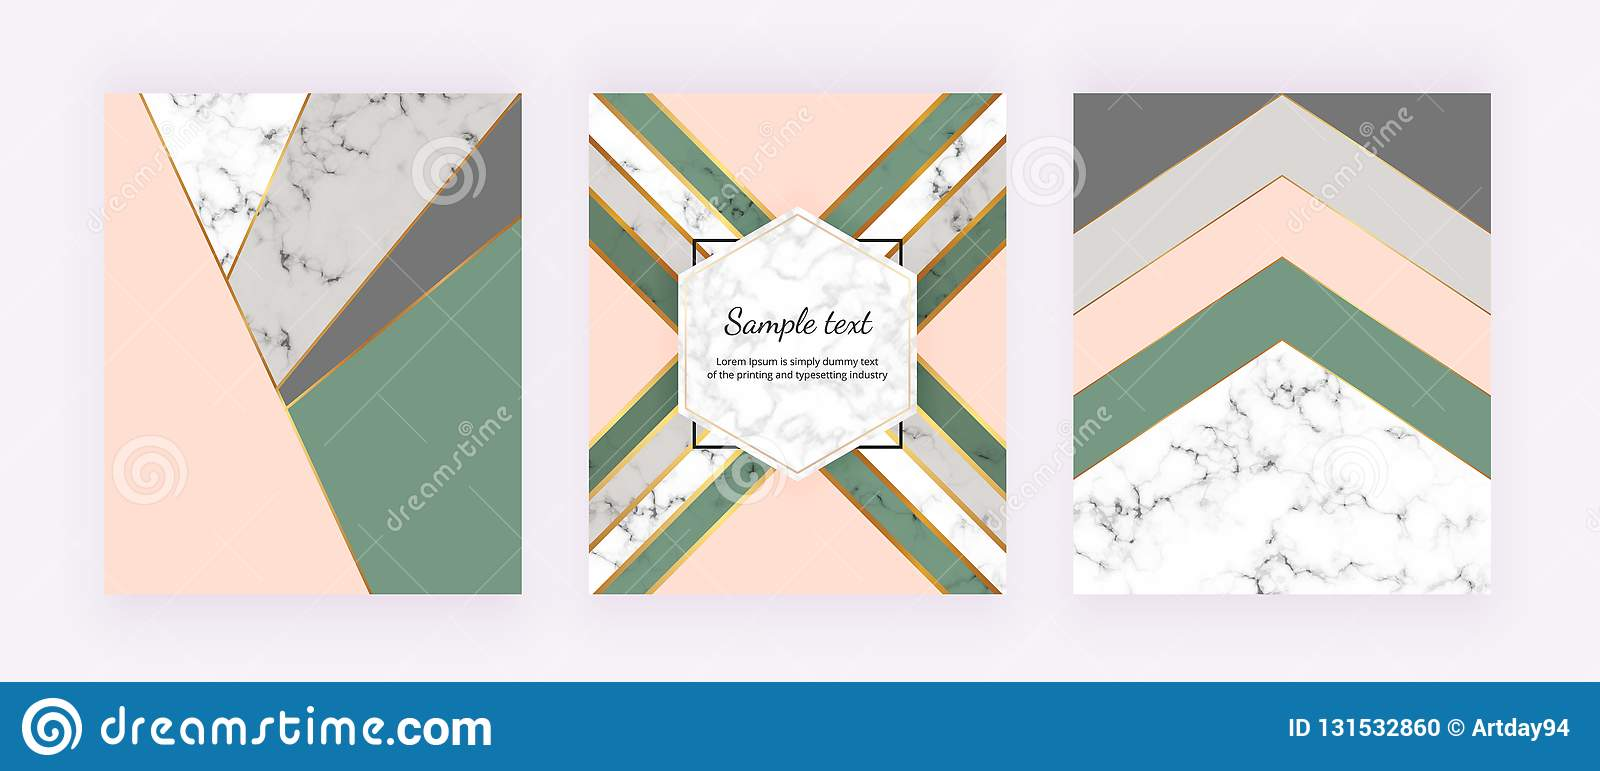 Modern cover with geometric design, golden lines, pink, grey and green triangular shapes. Fashion backgrounds for invitation, wedd